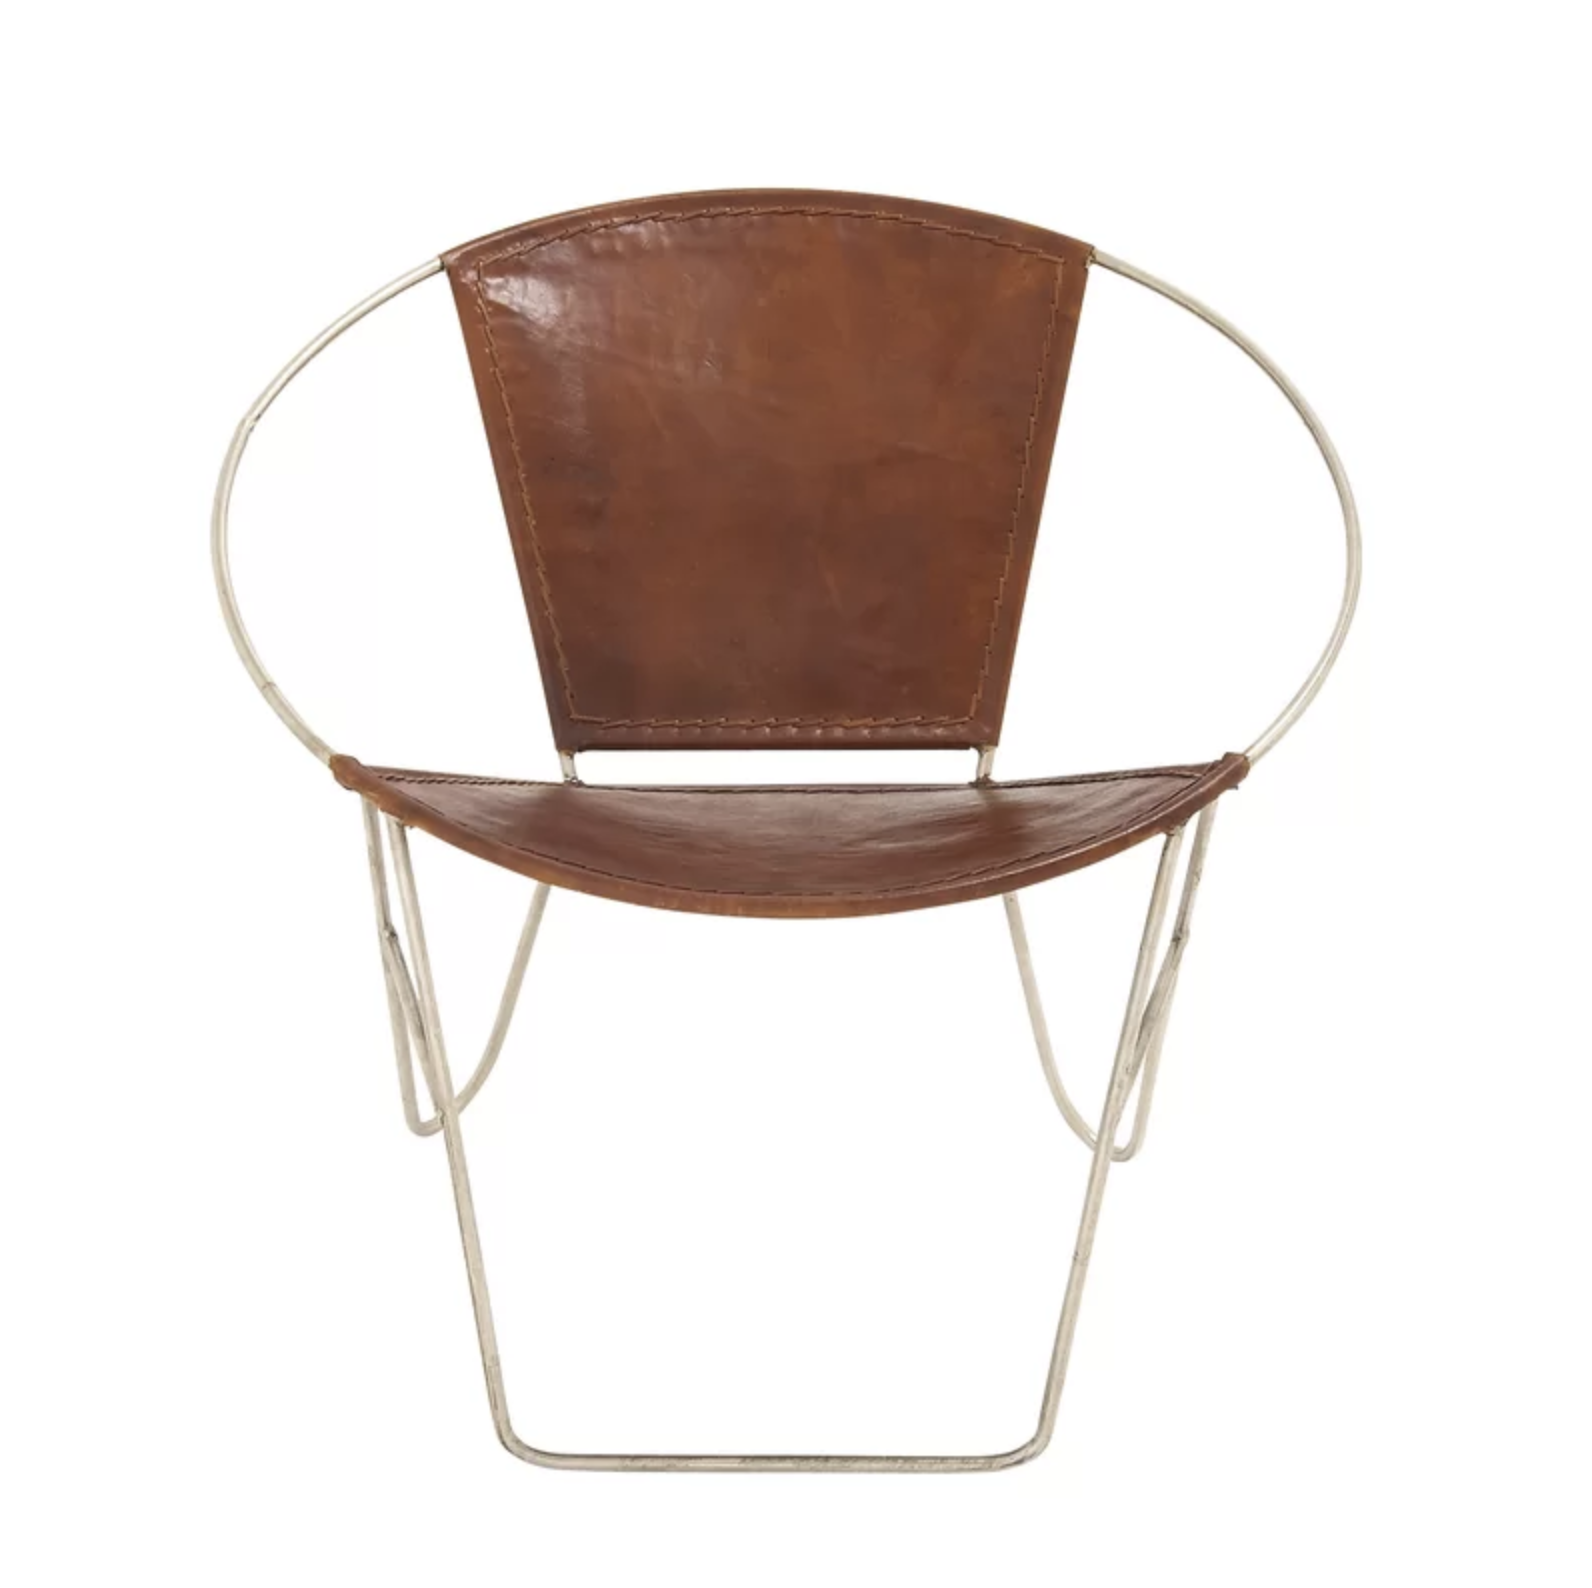 Brown Leather and Gold Metal Papasan Chair Accent Chair Roundup | Modern, Industrial, Rustic, Beach, Boho Accent and Arm Chairs | Miranda Schroeder Blog